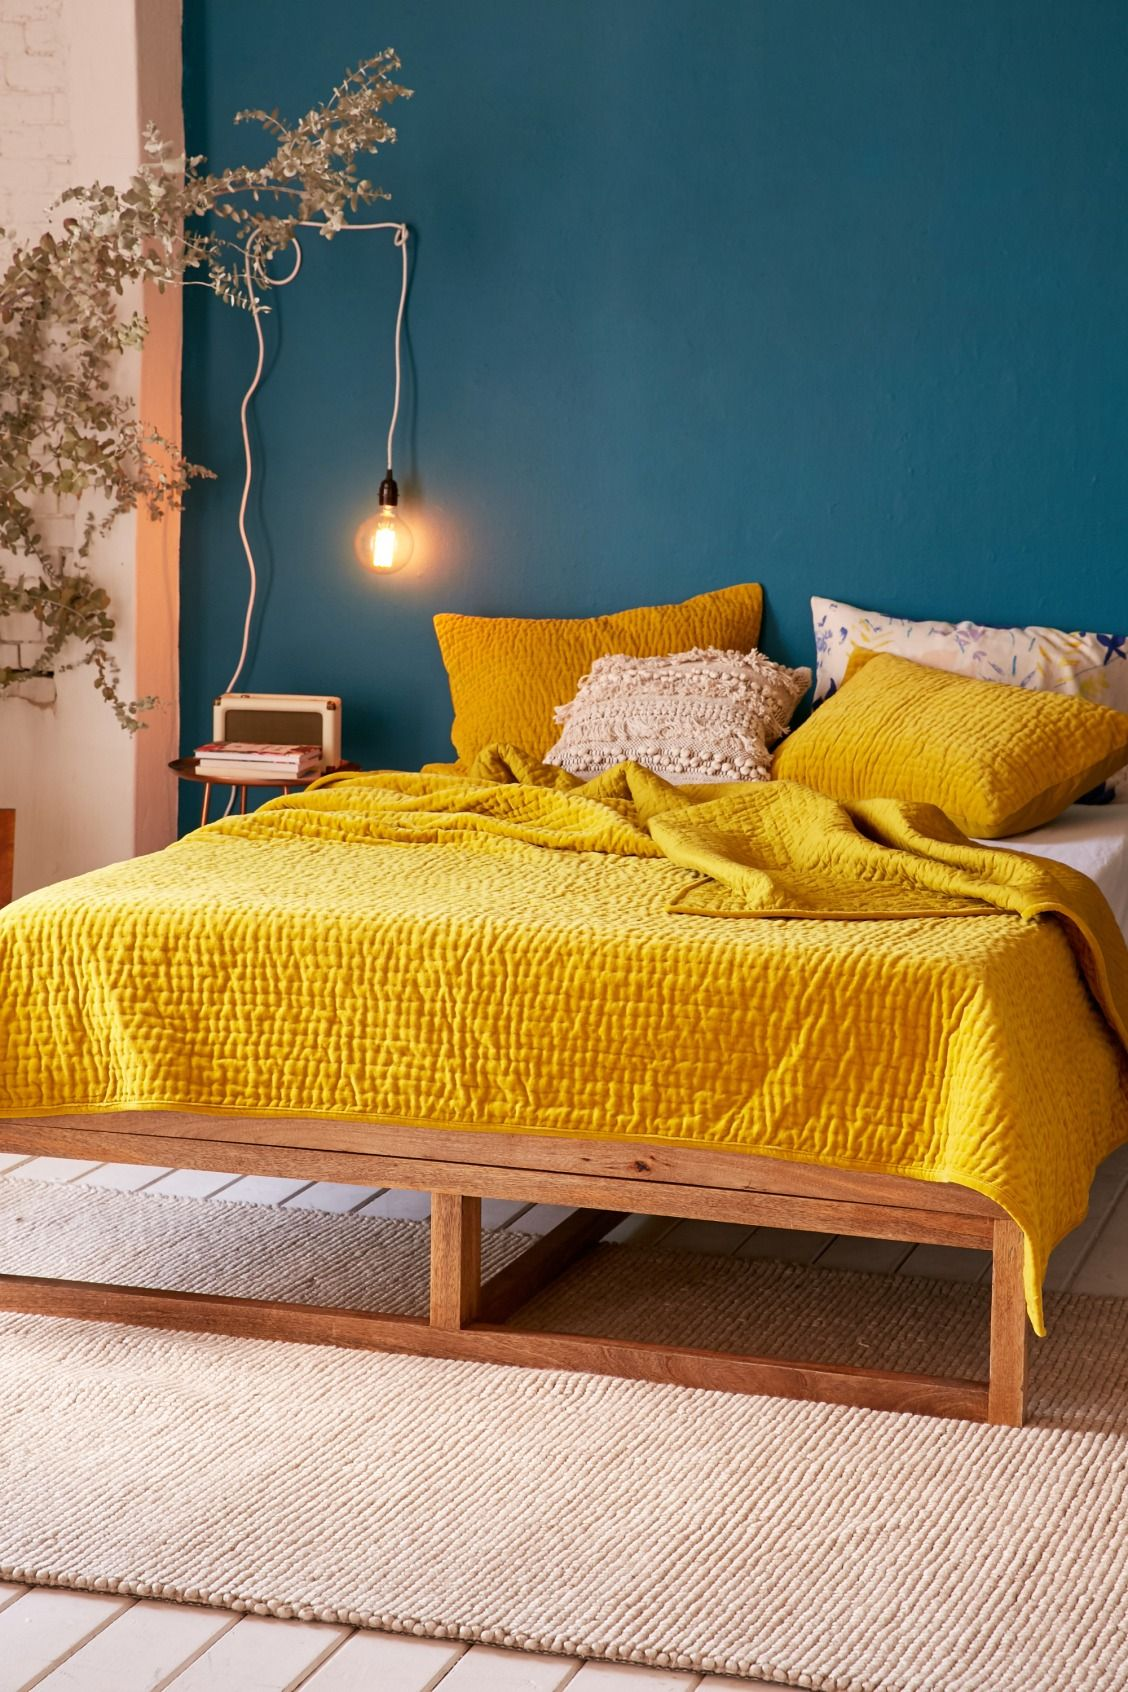 Master bedroom yellow walls  Bedding Pillows Bedroom Colors  spare room  Pinterest